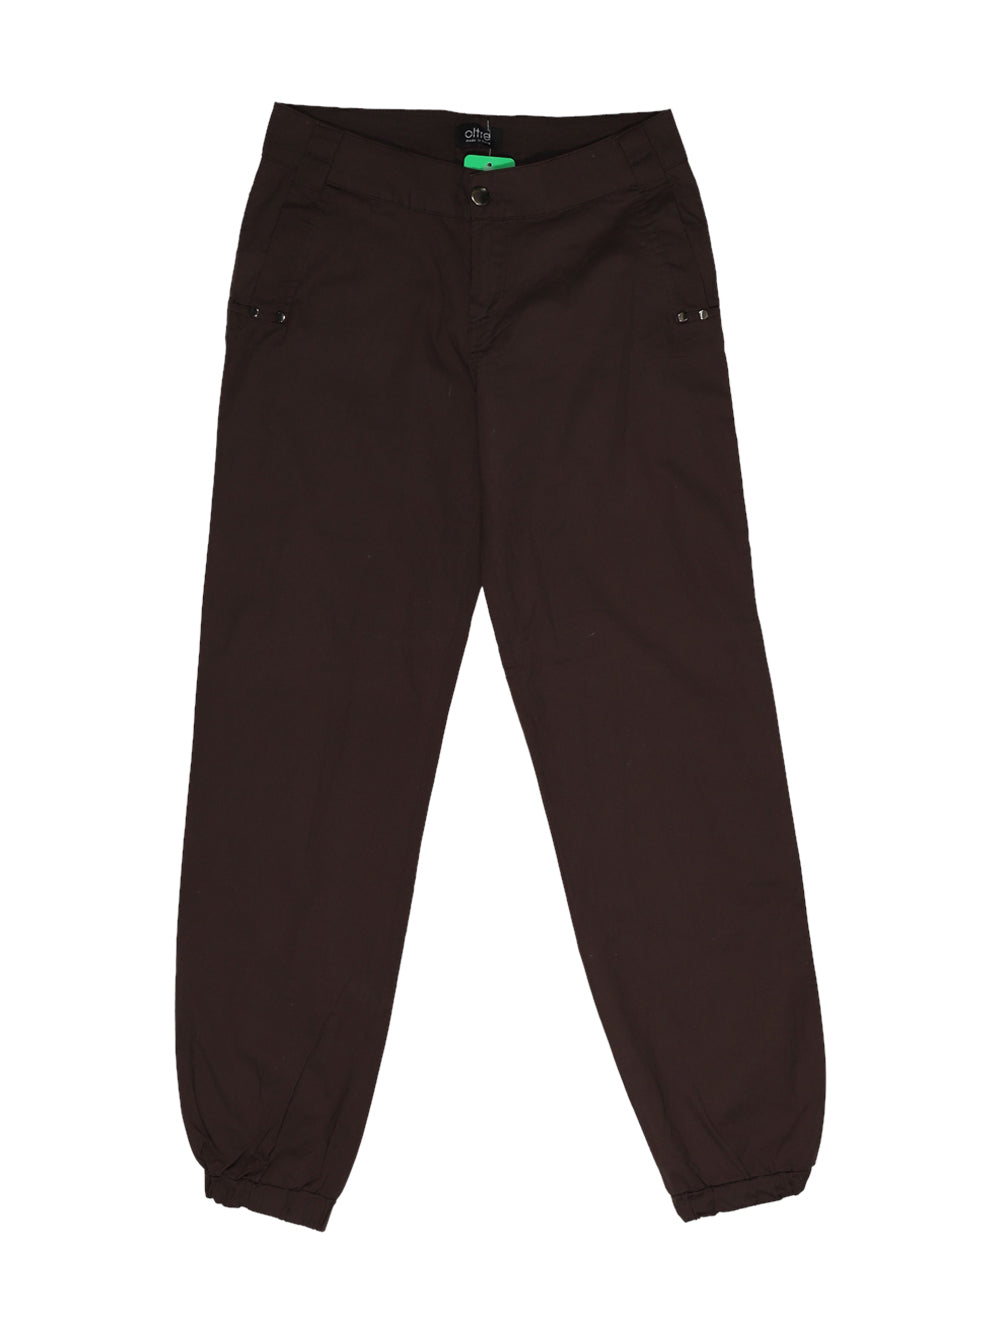 Front photo of Preloved Oltre Brown Woman's trousers - size 10/M